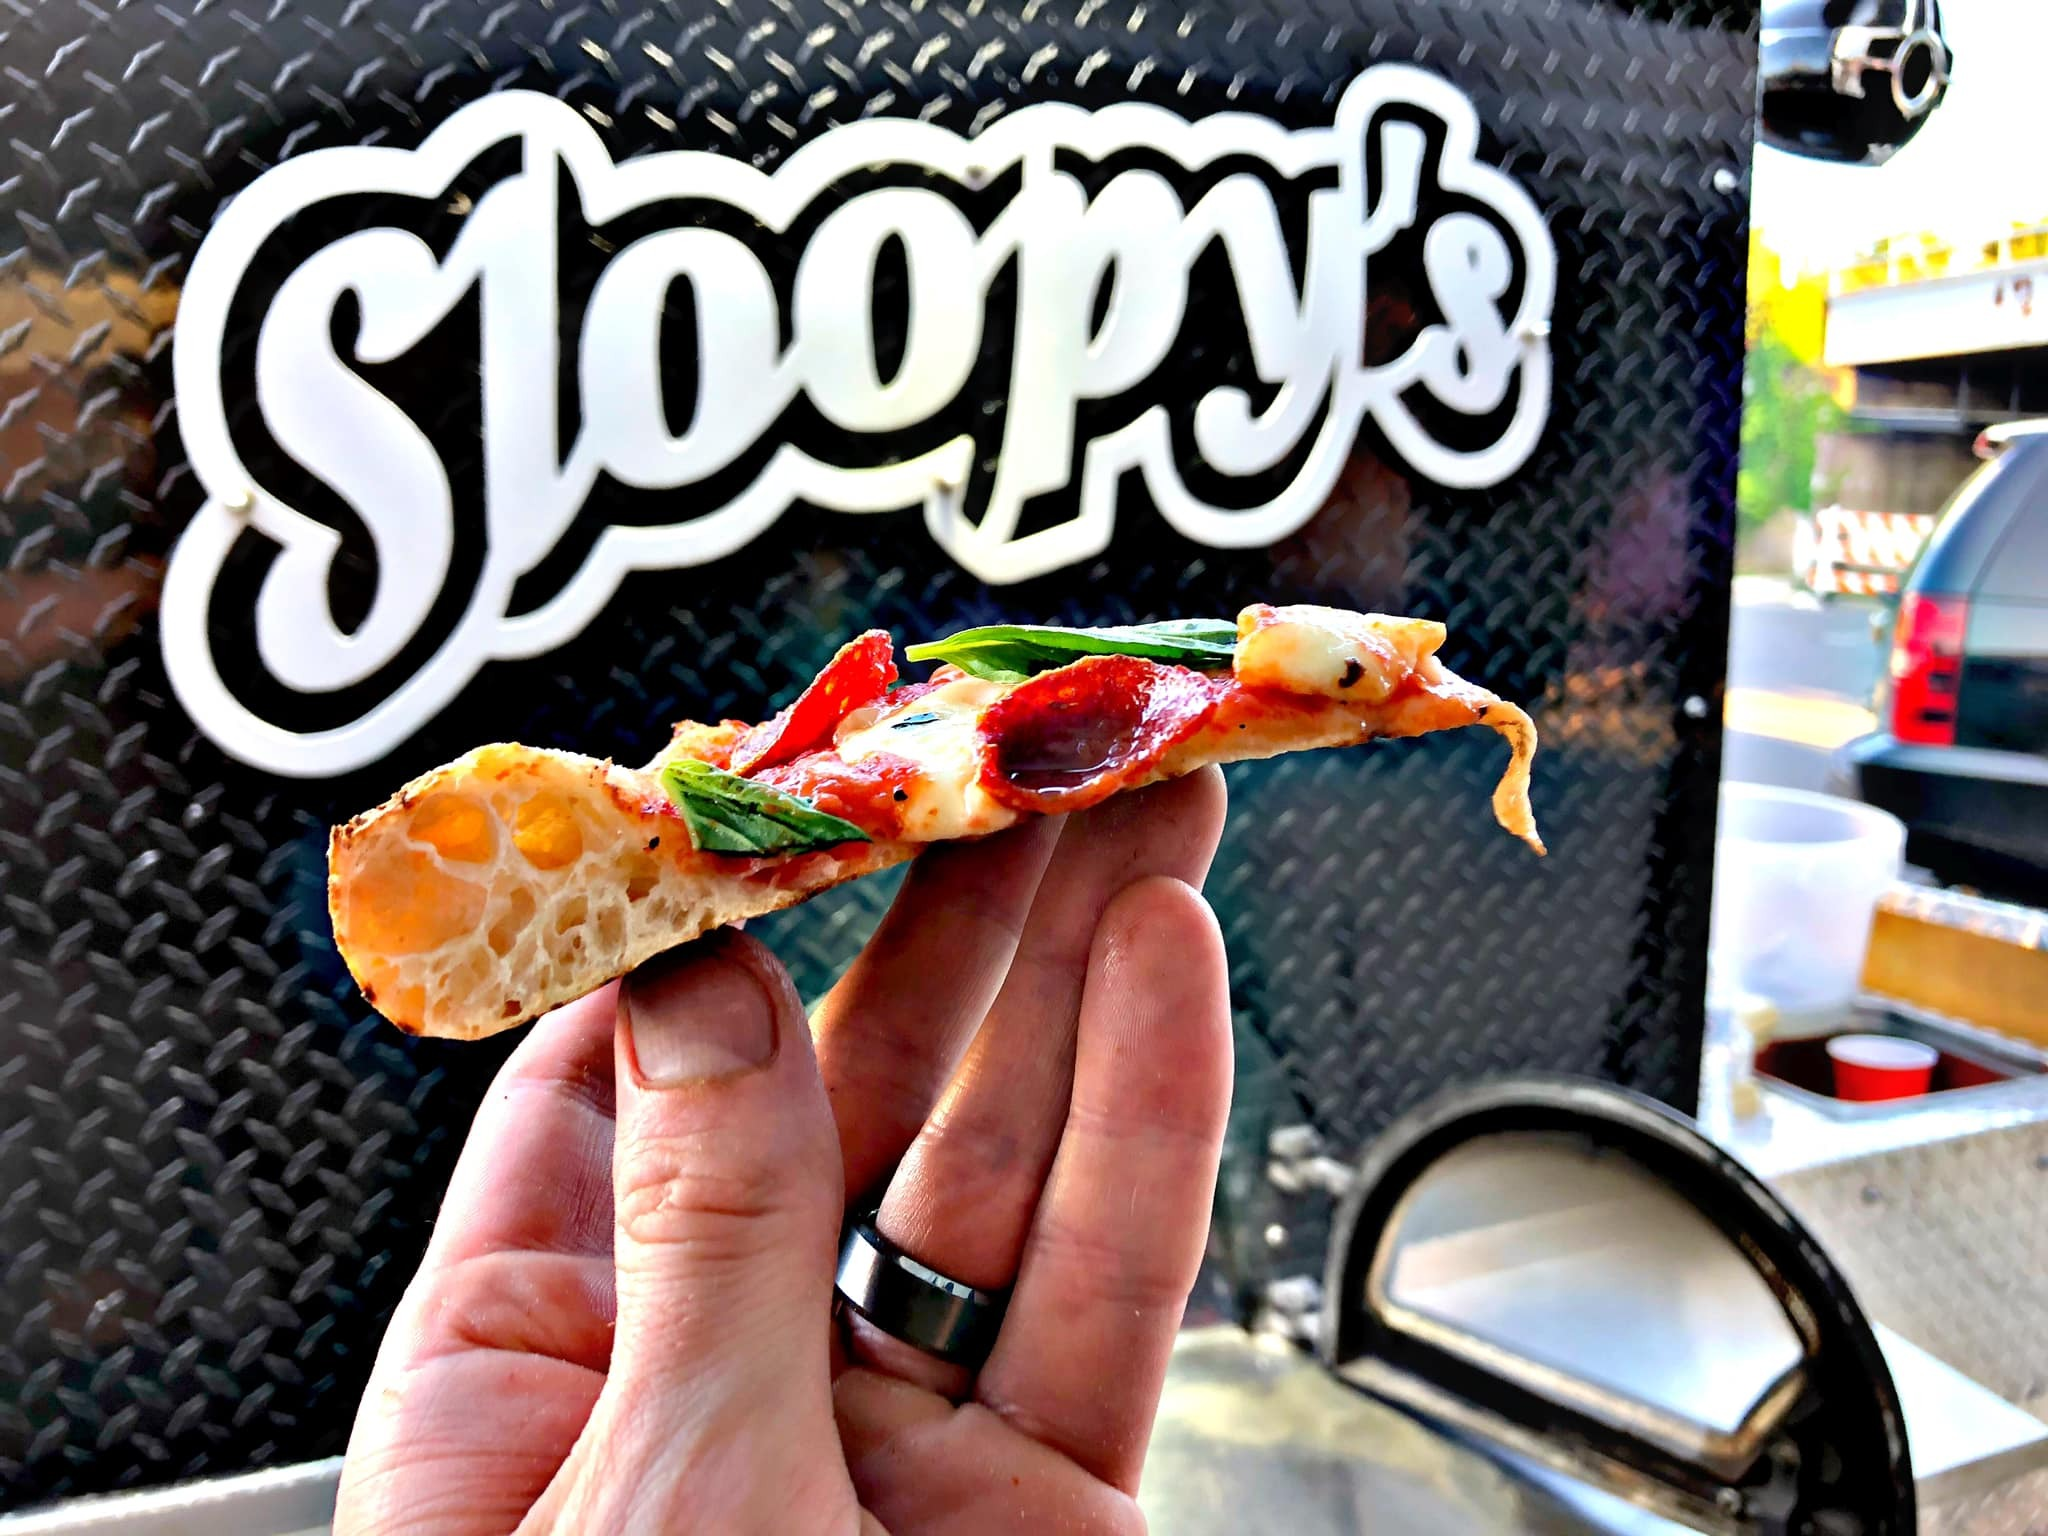 a slice of sloopy's pizza with the mobile pizza oven in the background